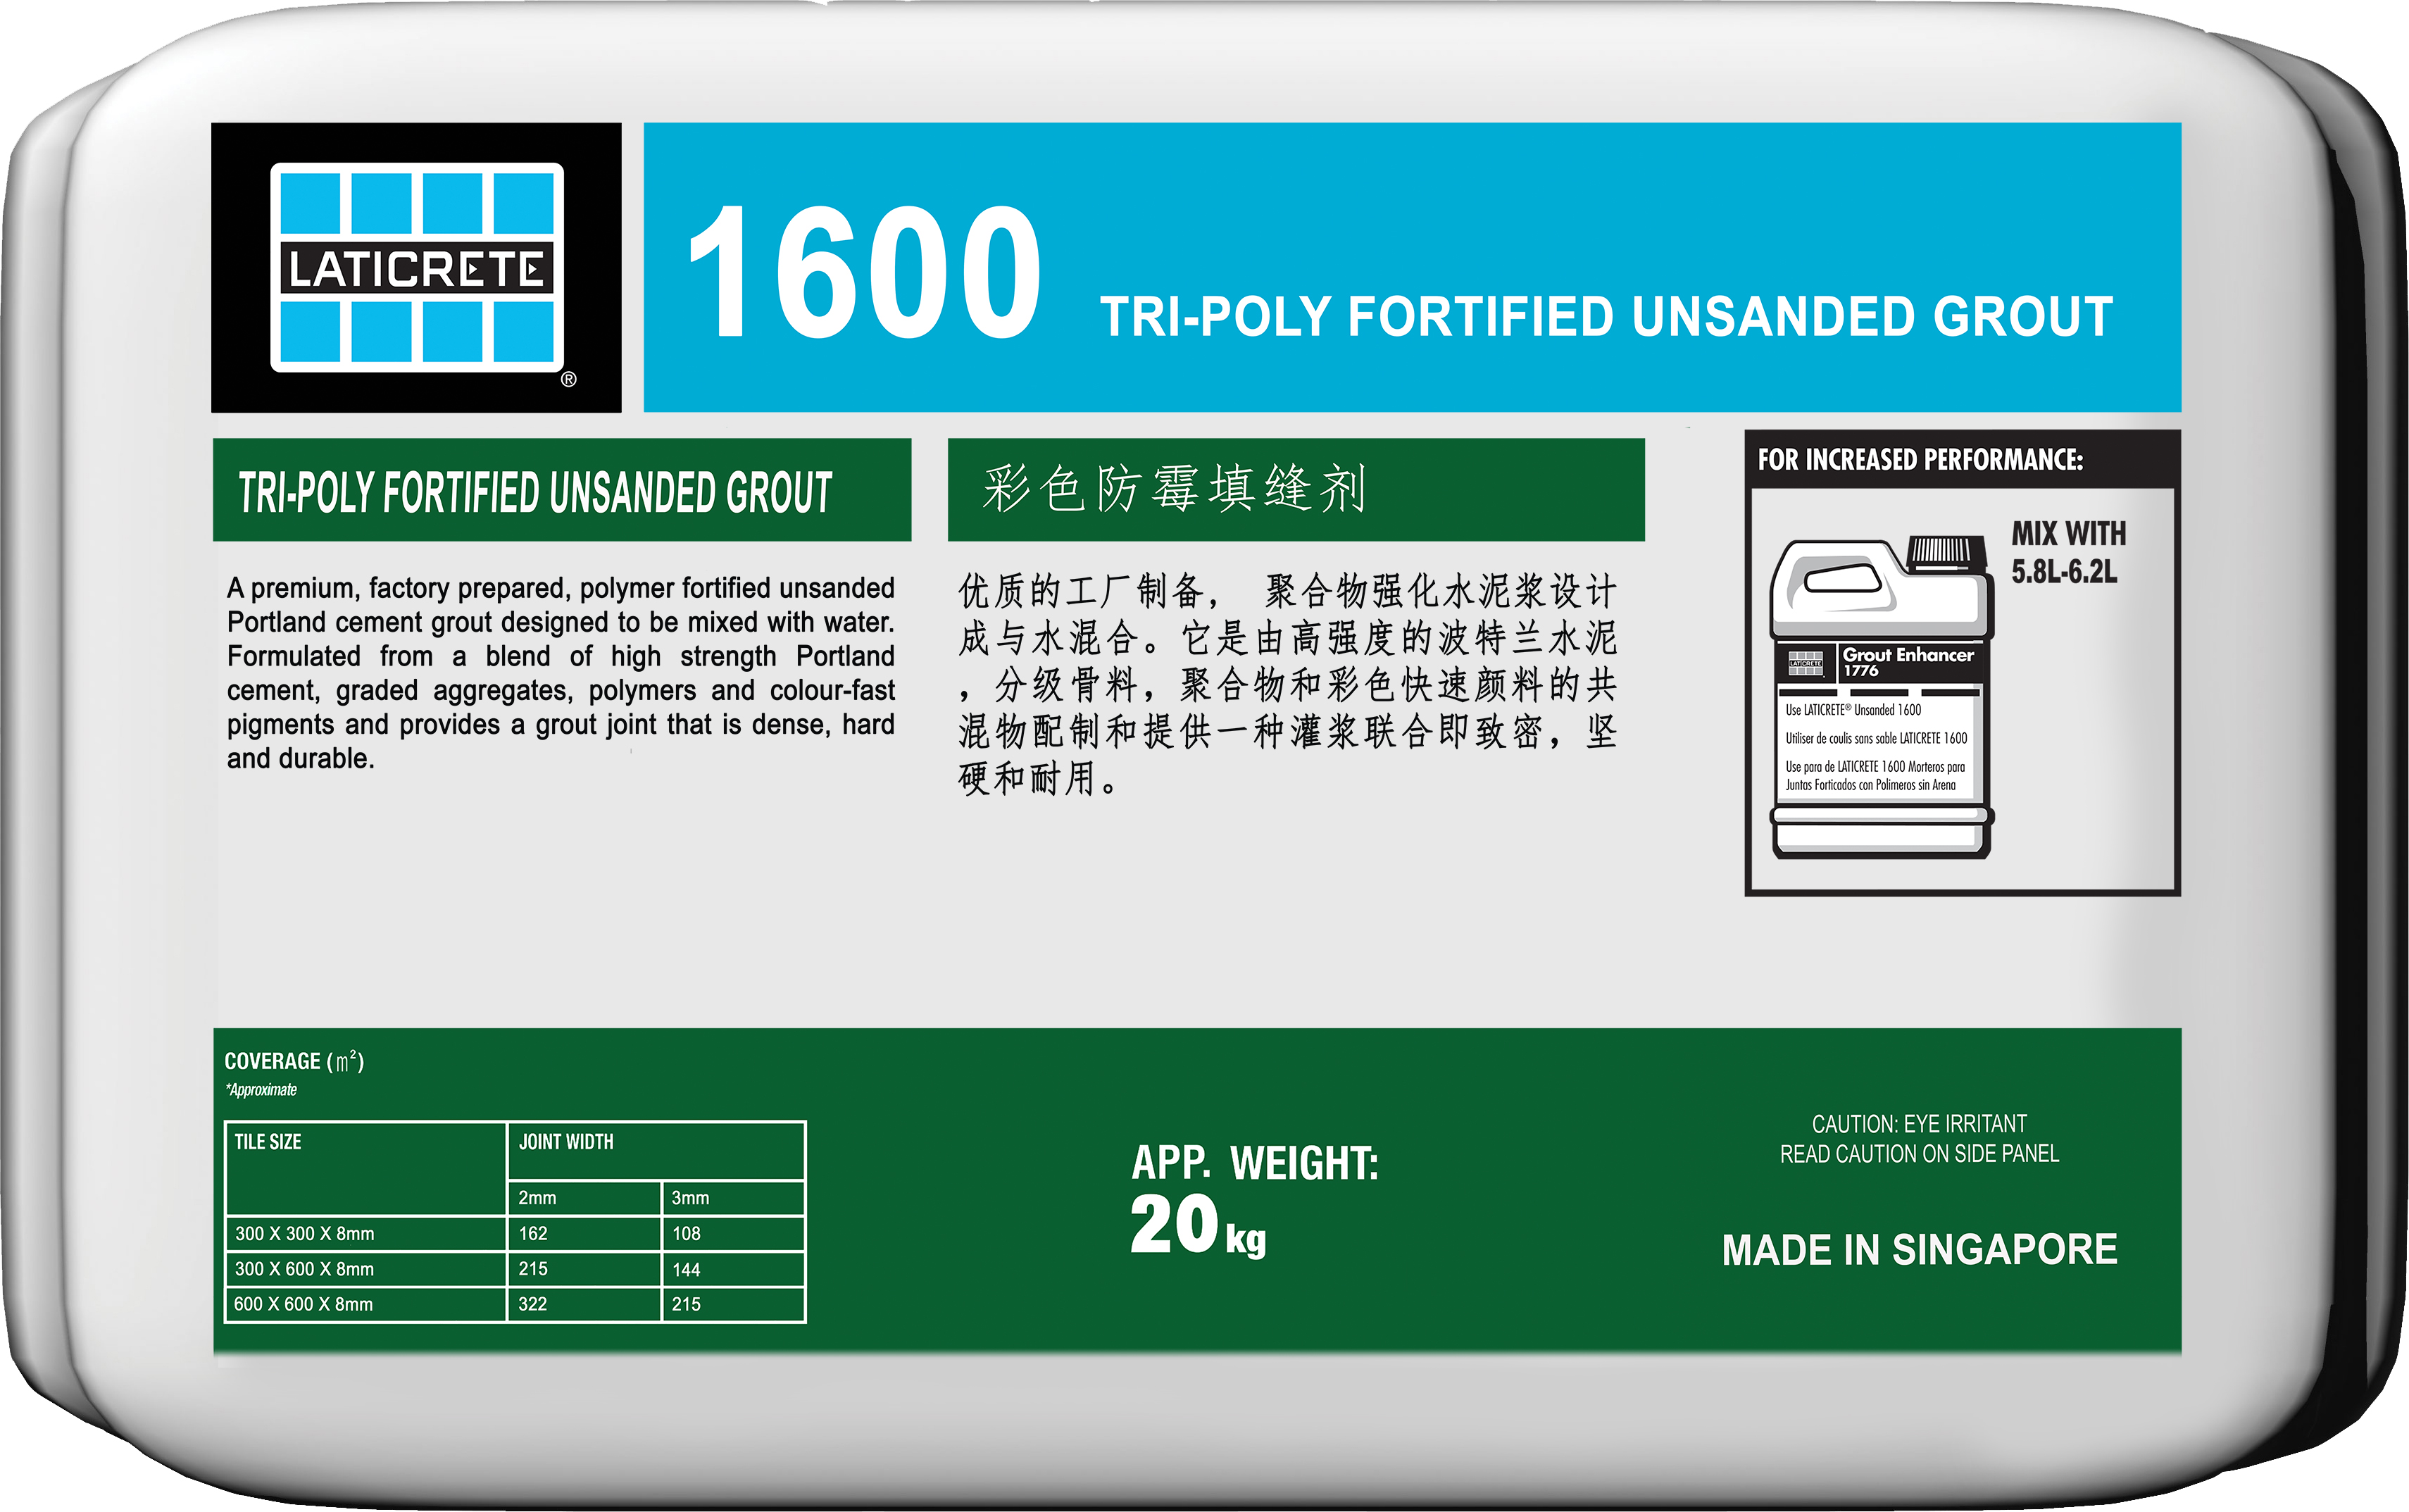 1600 Tri-Poly Fortified Unsanded Grout